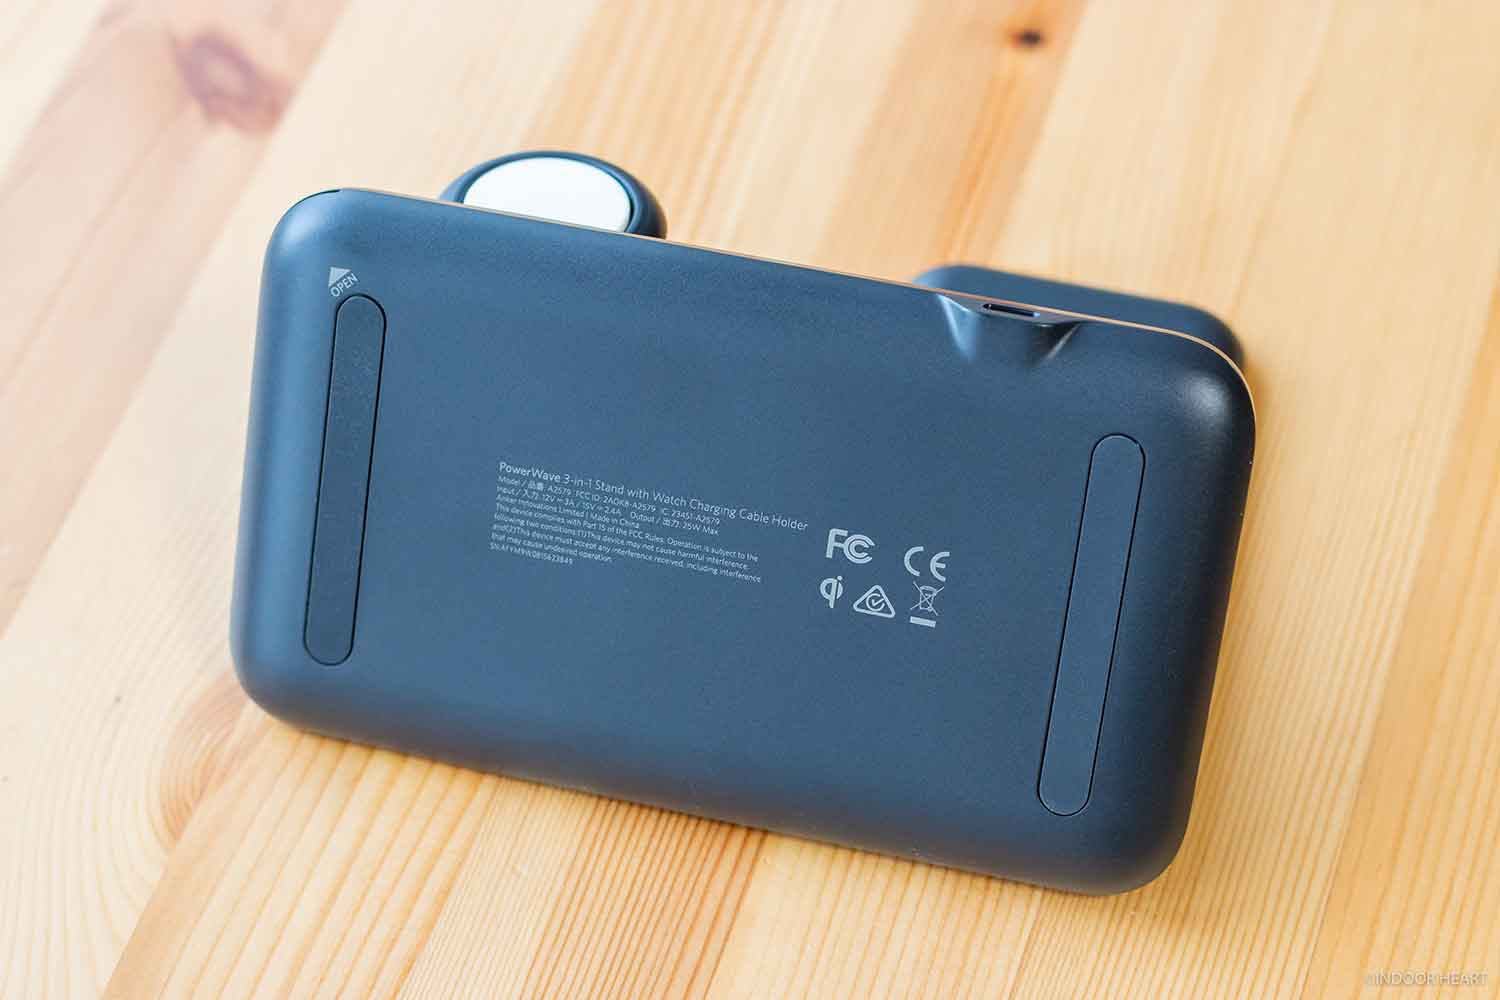 「Anker PowerWave+ Pad with Watch Holder」の底面